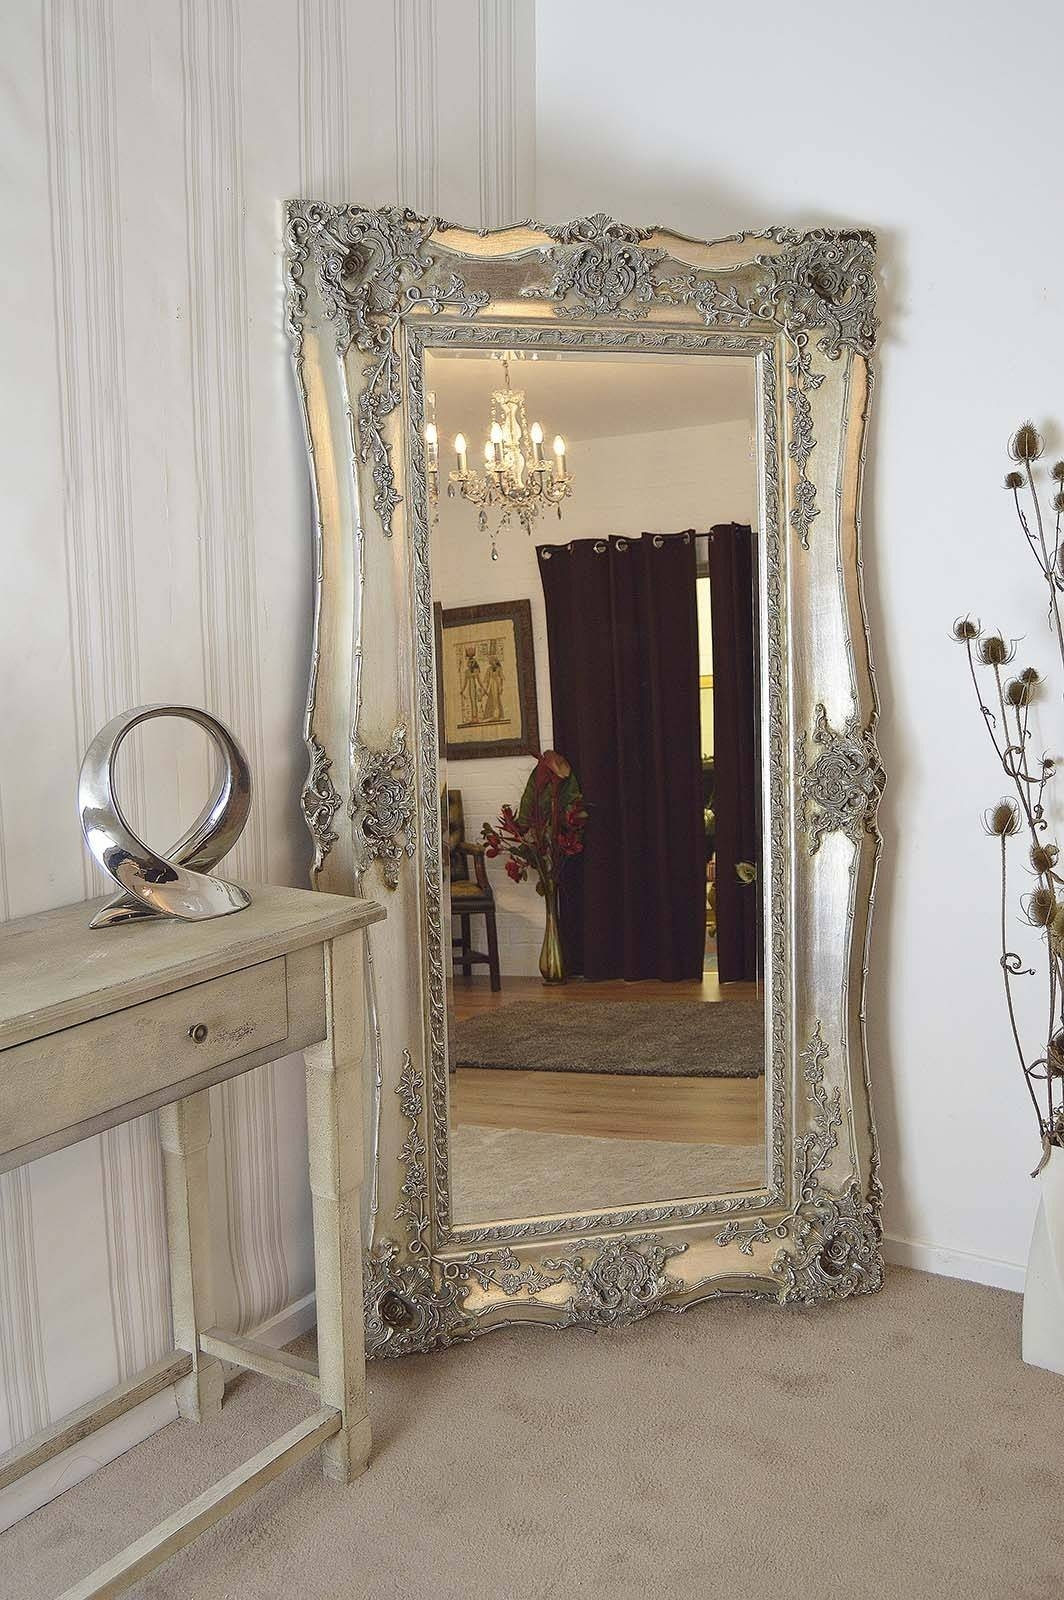 Antique Free Standing Dresser Mirror ~ Bestdressers 2017 pertaining to Full Length Vintage Standing Mirrors (Image 2 of 25)